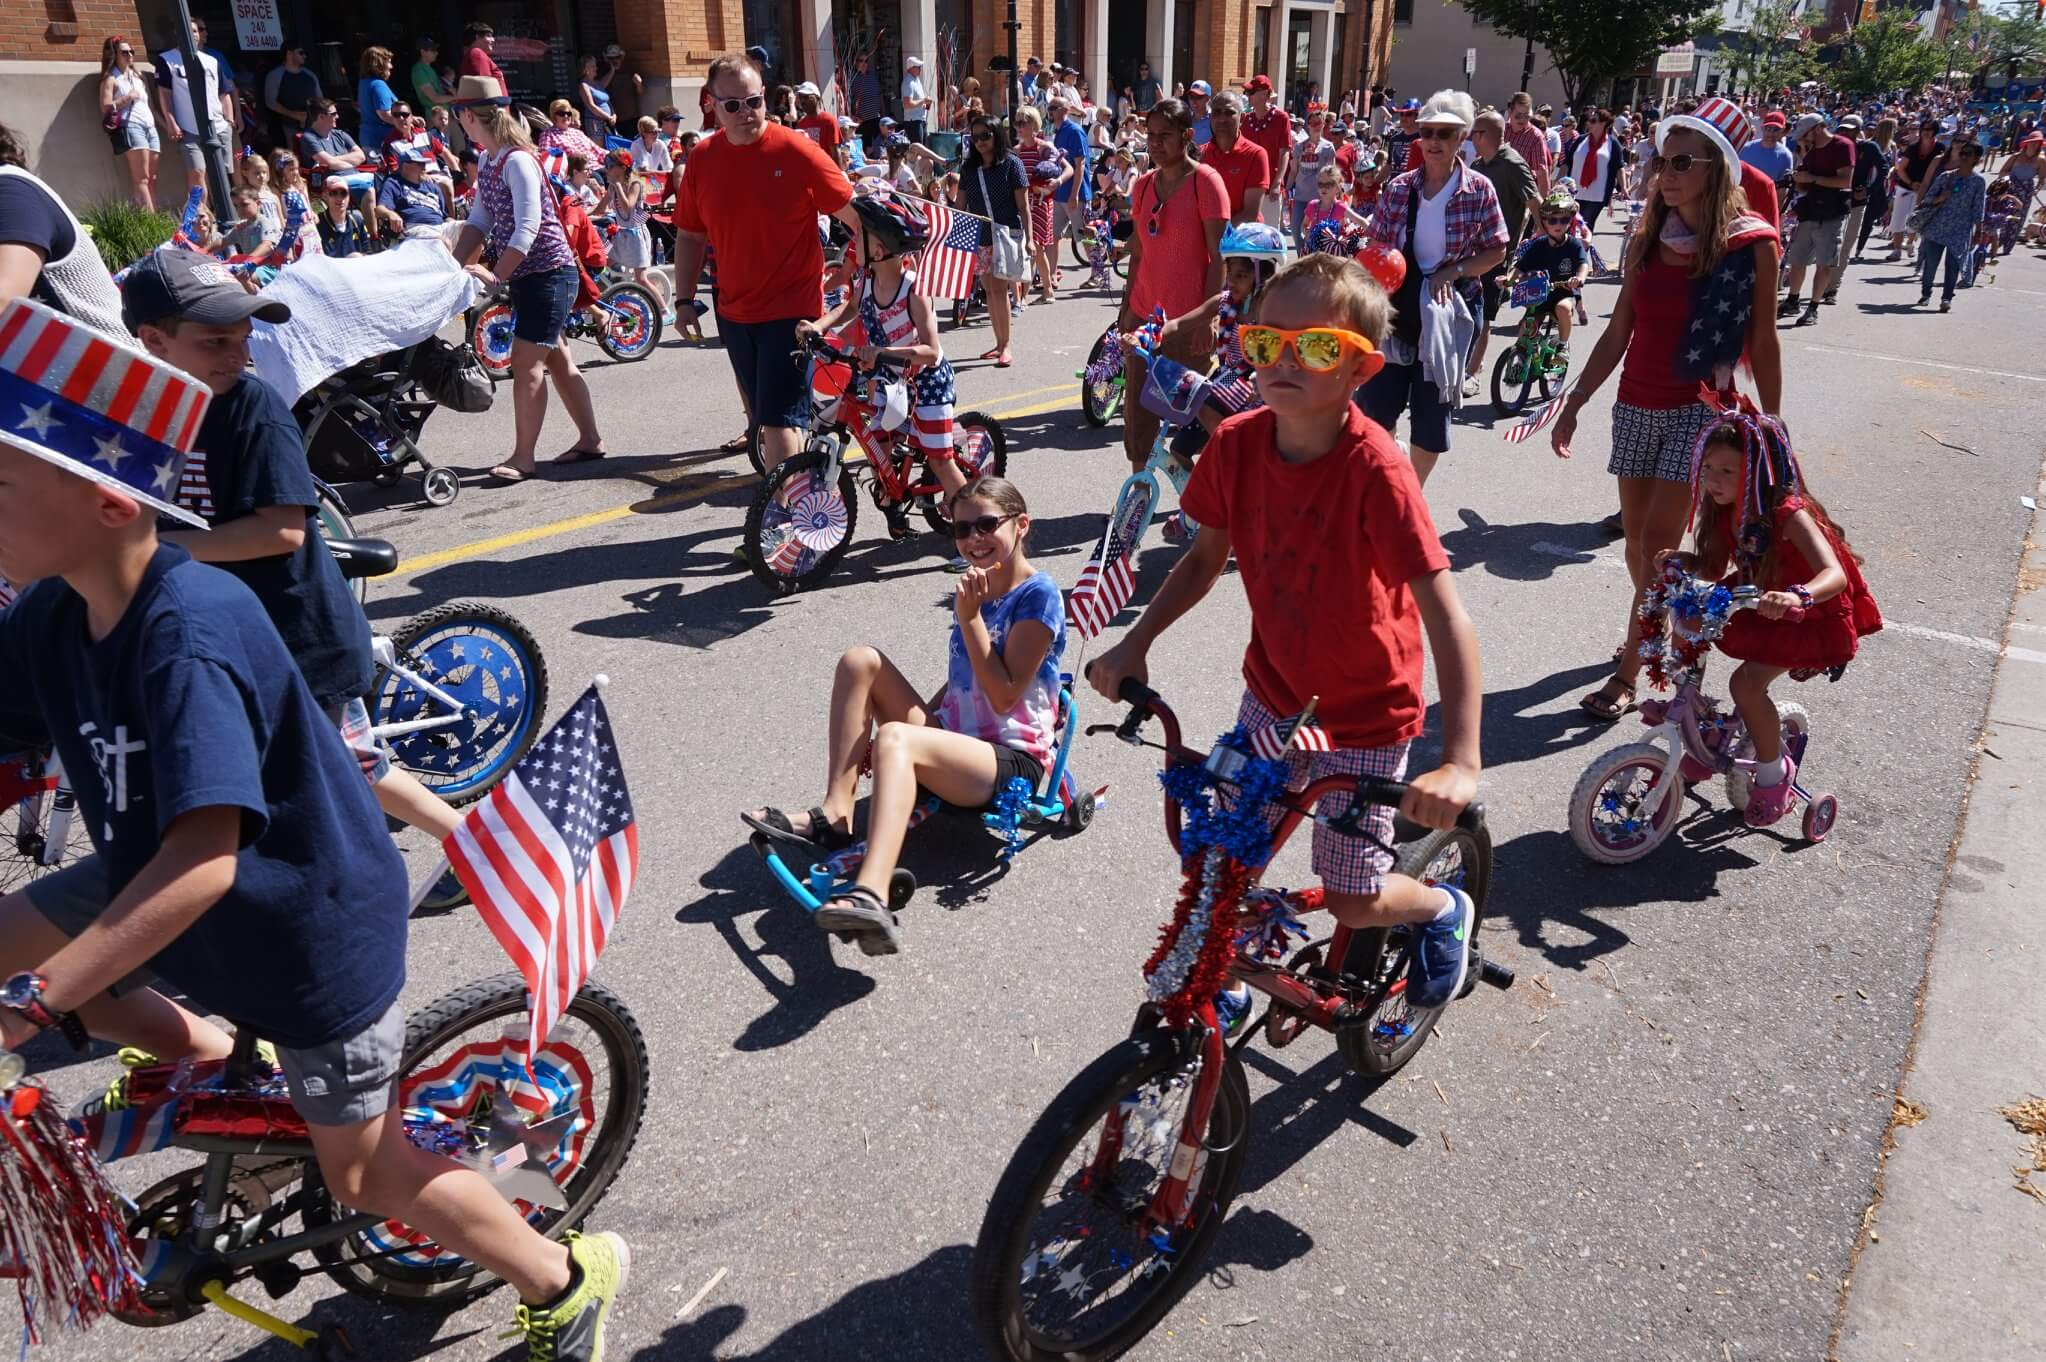 Guide to 4th of July Parades in Metro Detroit